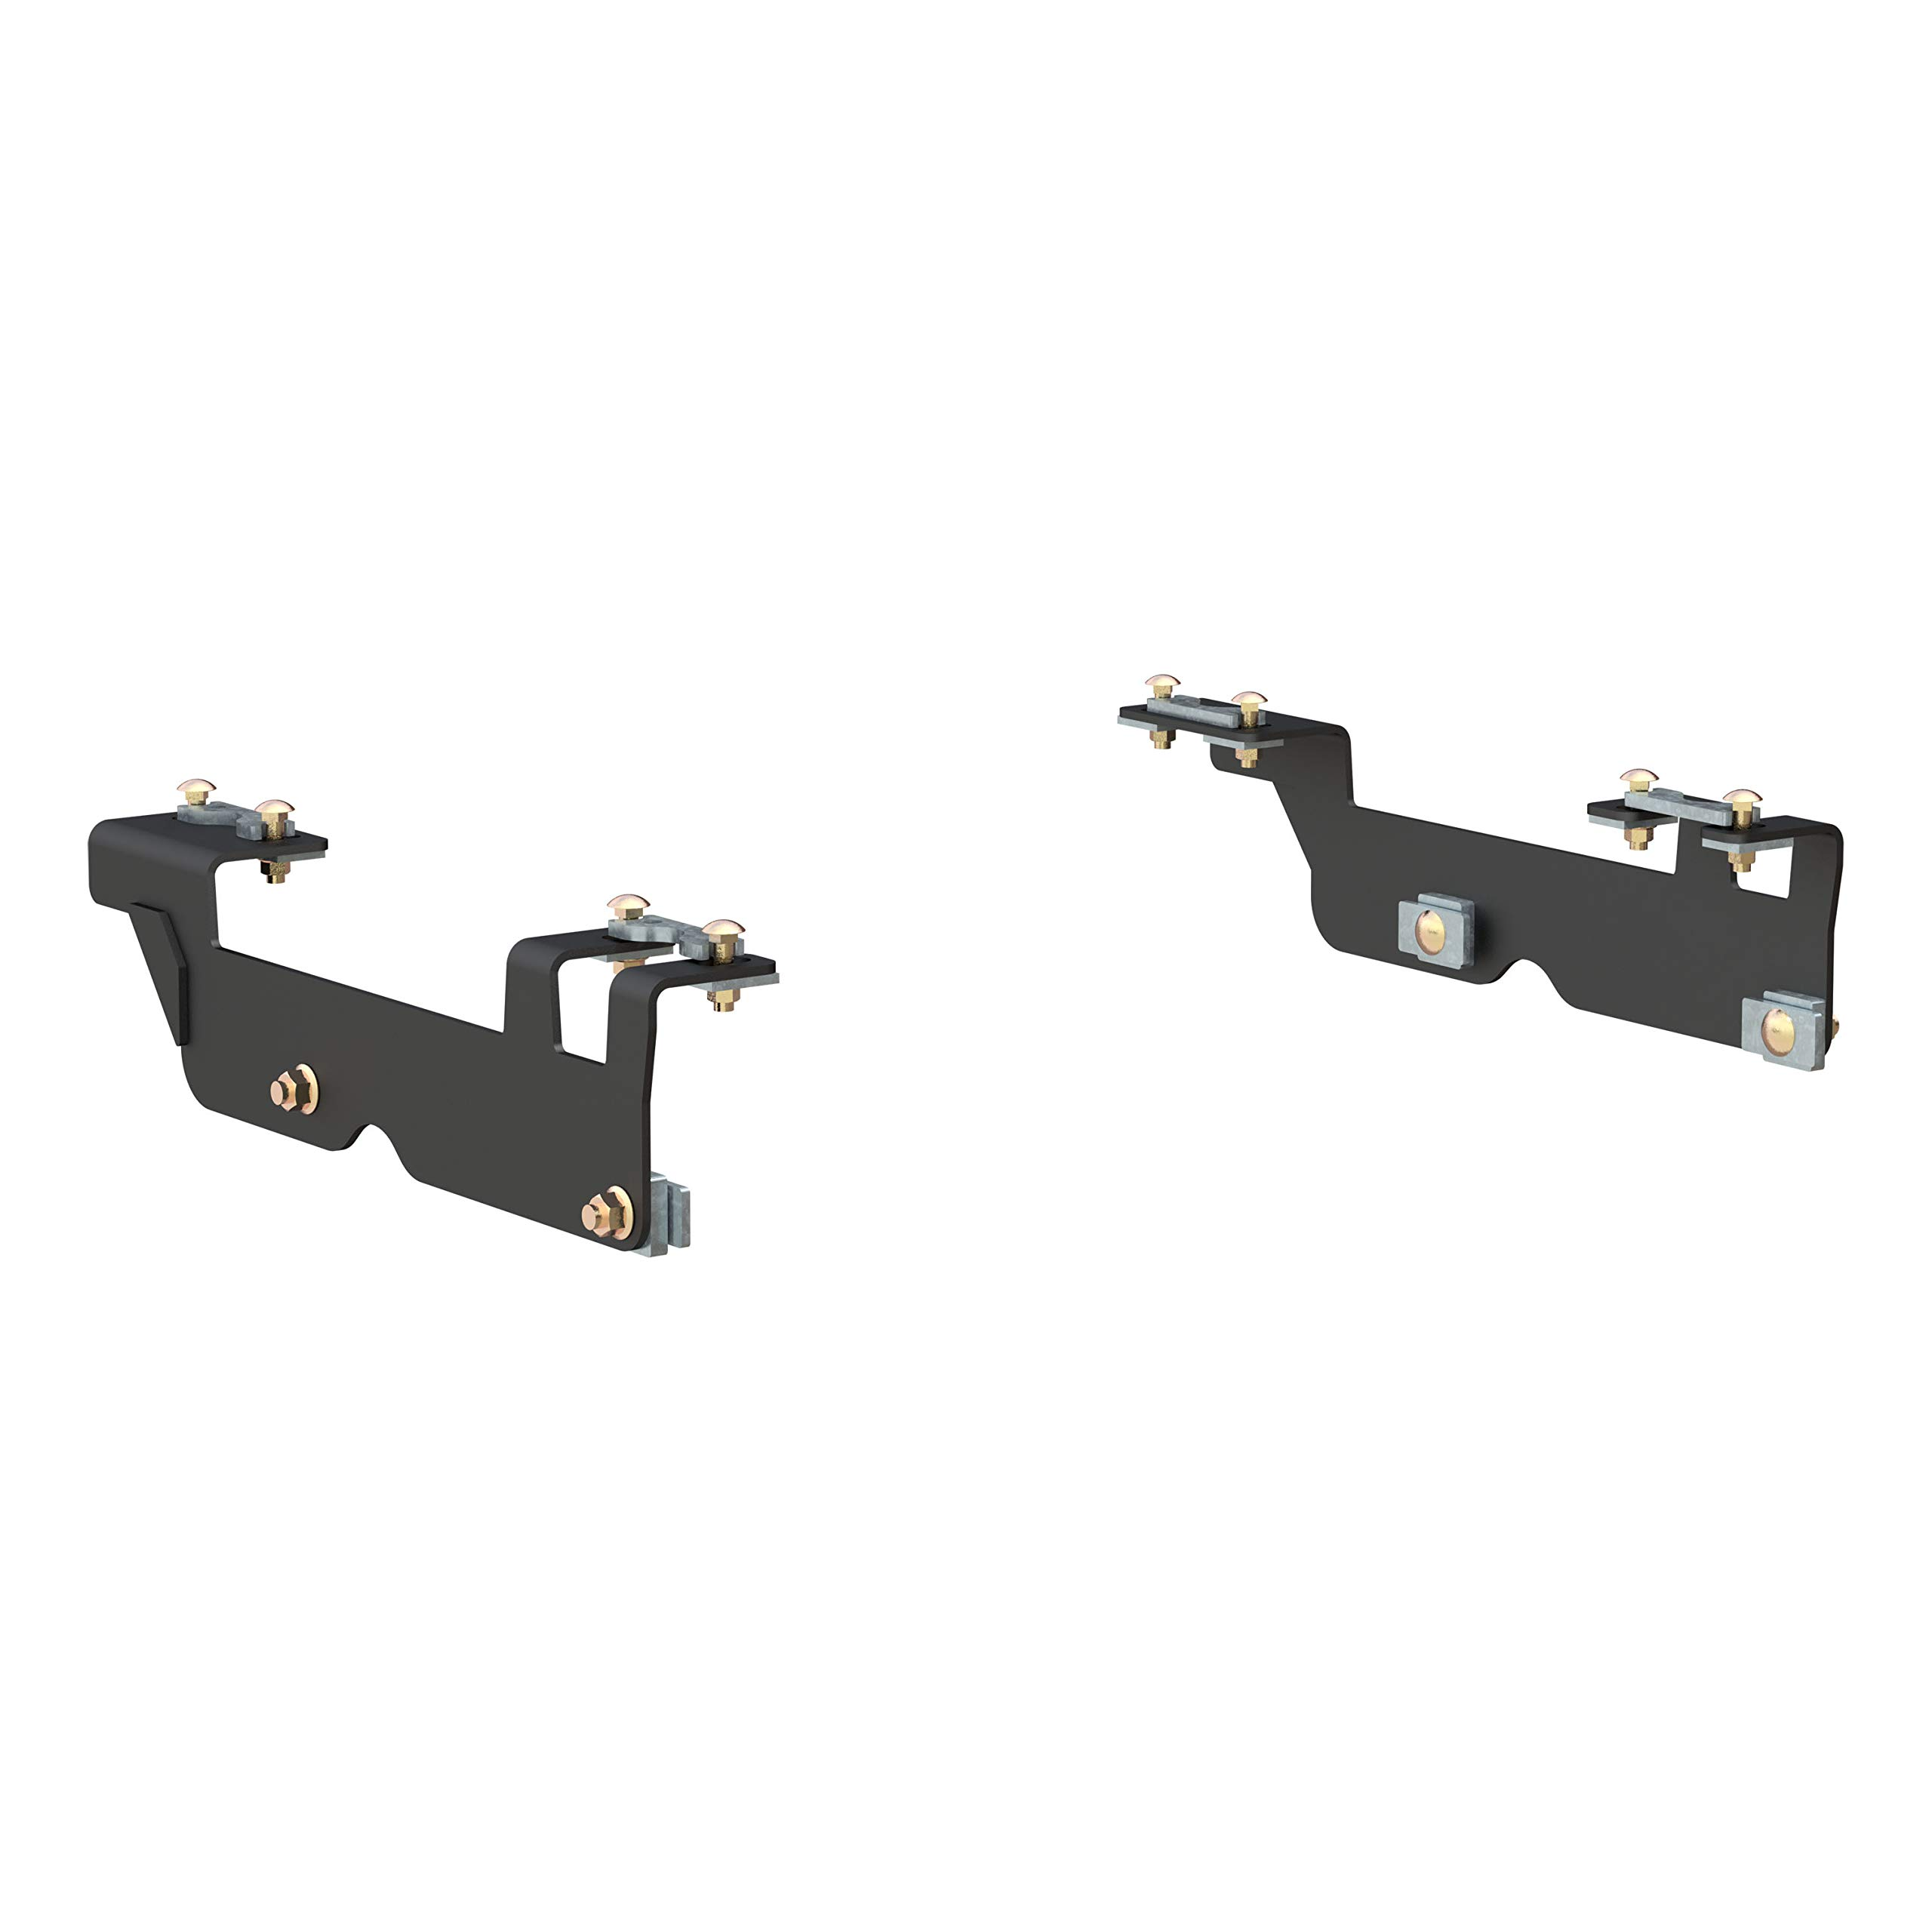 CURT 16442 Black 5th Wheel Hitch Installation Brackets for Select Ford F-150